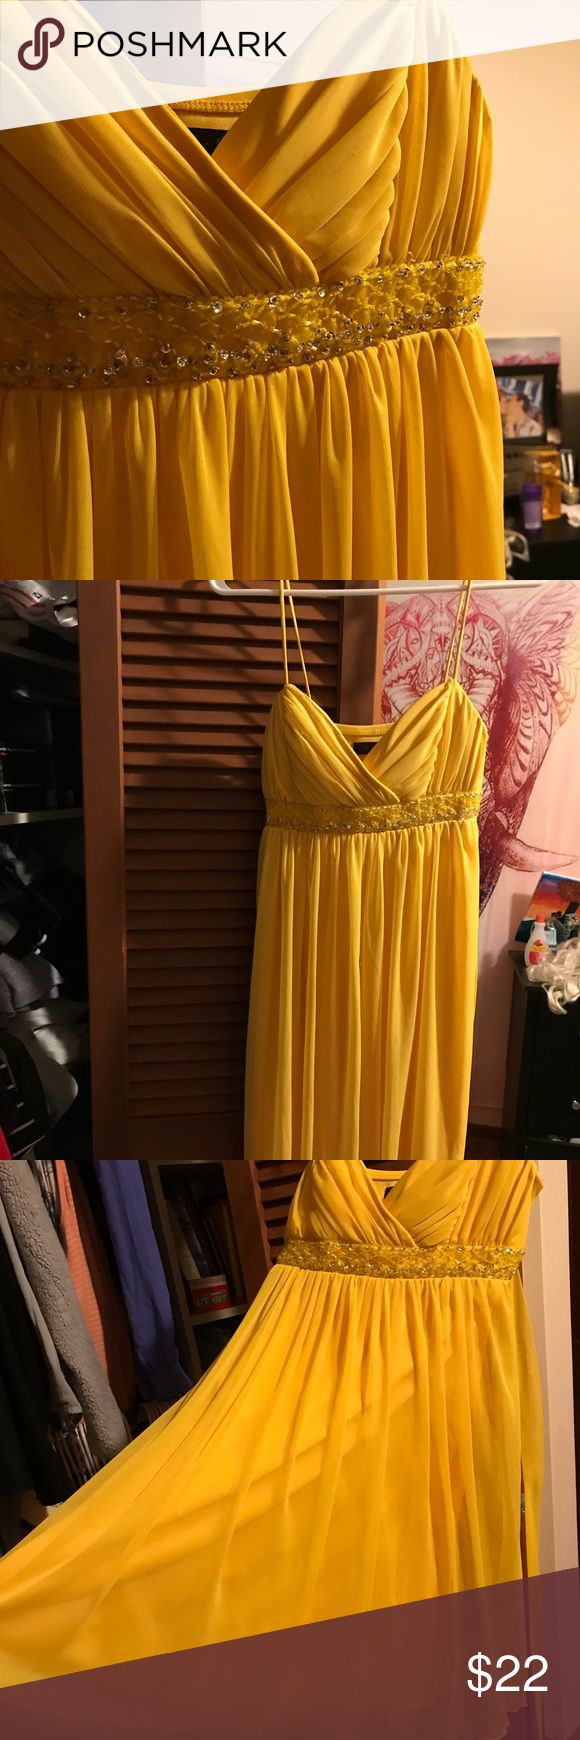 Gorgeous Yellow Sequence Dress Never worn, looks beautiful for any event you may have. The sequencing on the top is gorgeous and that's how you'll look when you have this dress on! Gorgeous! Dresses Wedding